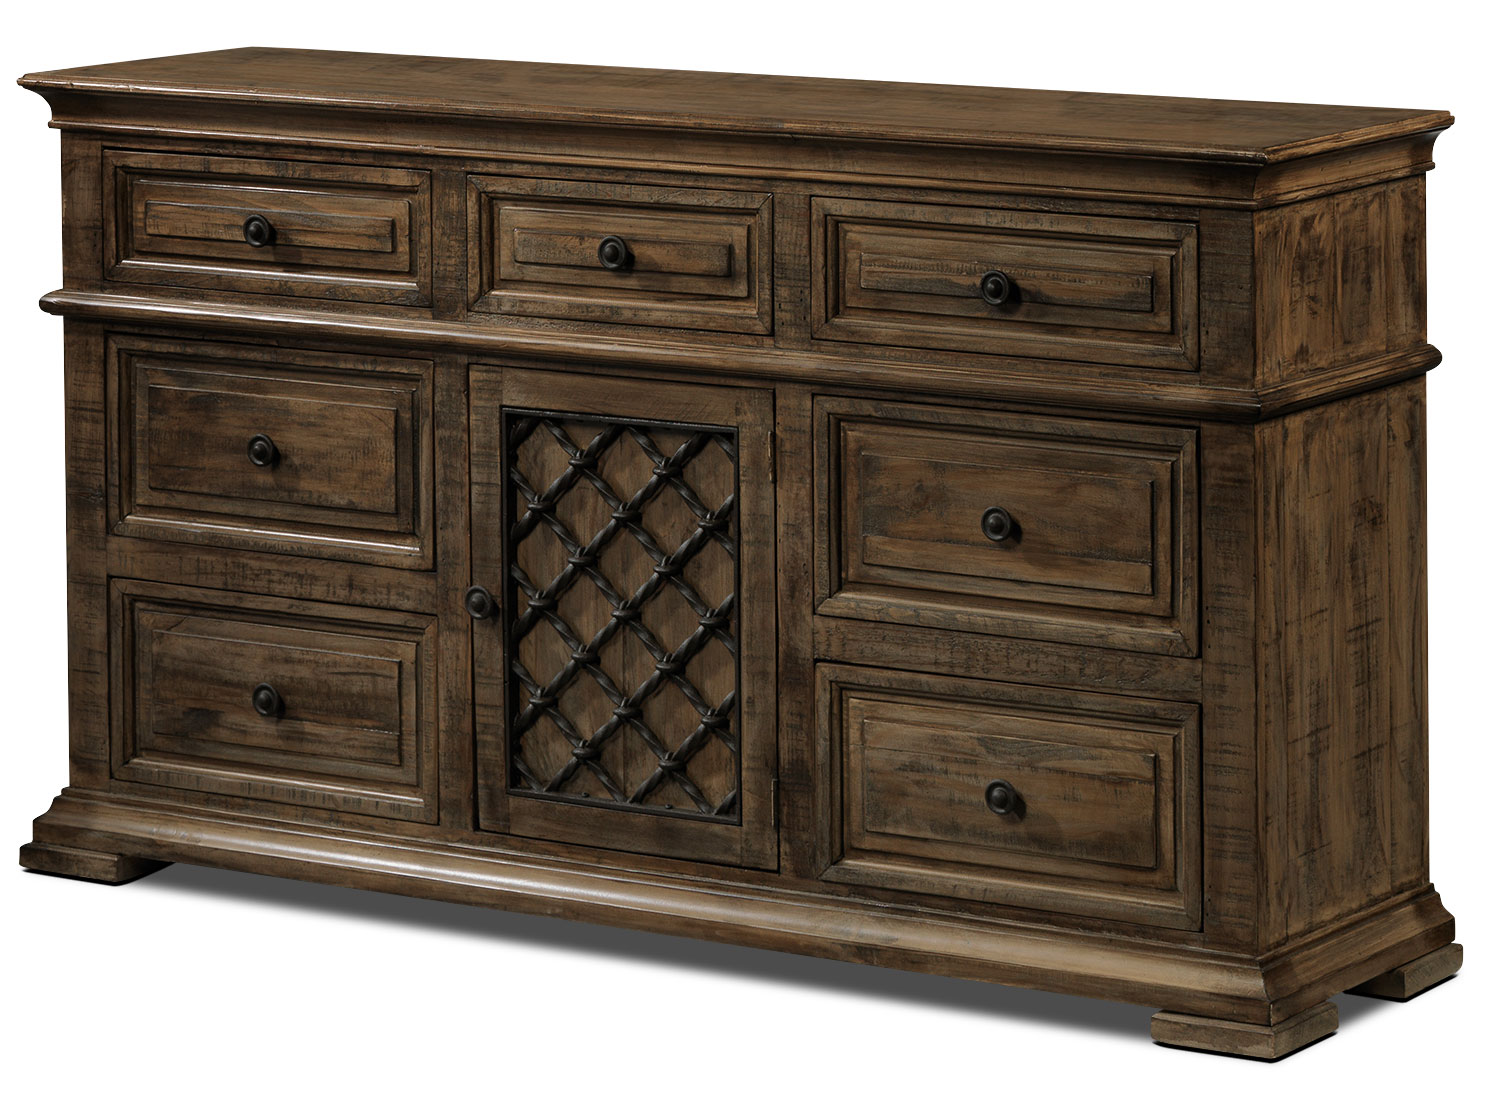 Monterry Dresser - Brown Driftwood